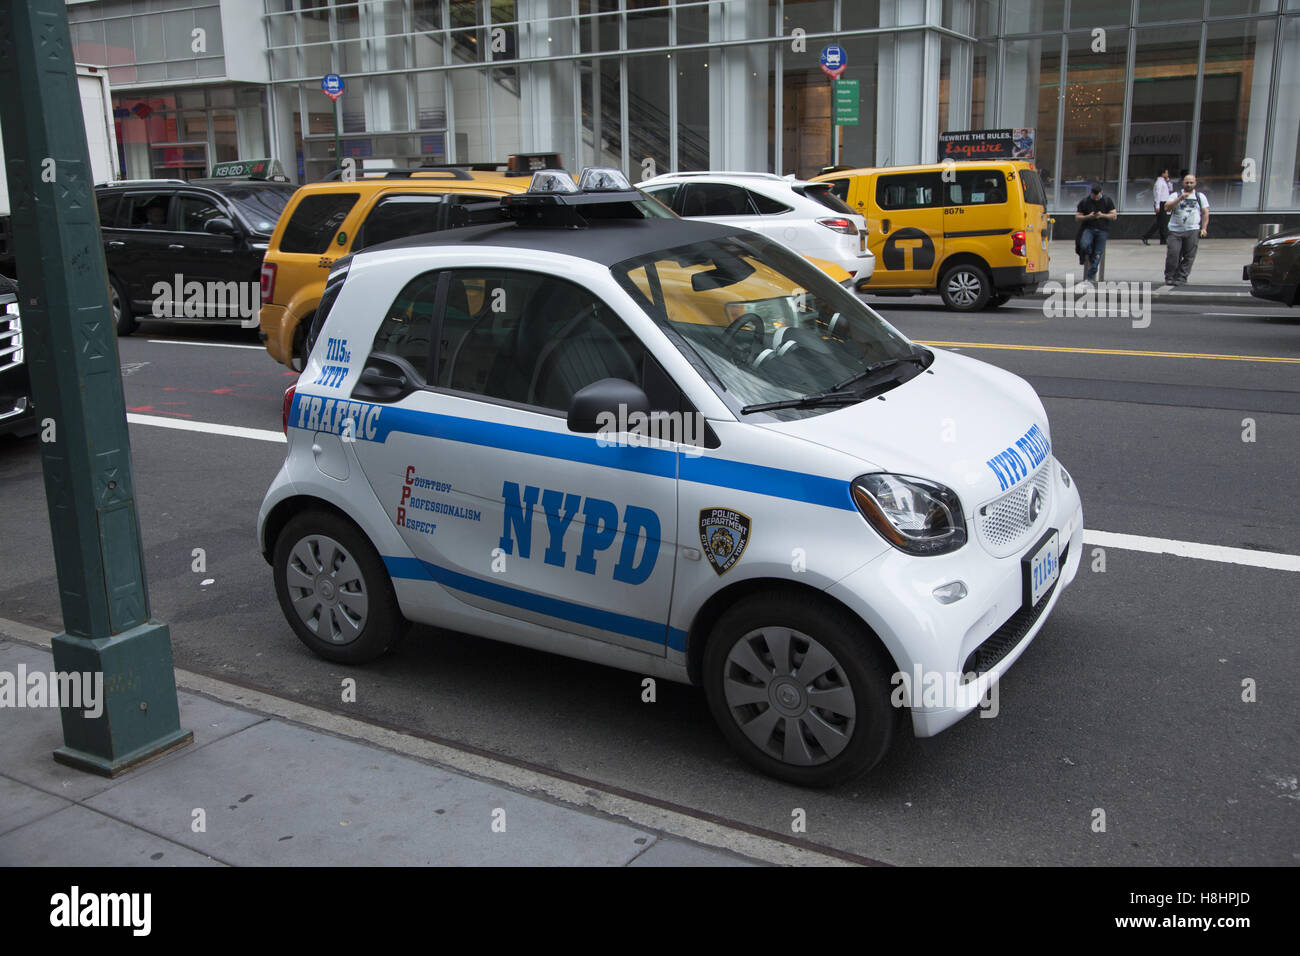 new york police department nypd mini car used in the traffic stock photo 125780773 alamy. Black Bedroom Furniture Sets. Home Design Ideas